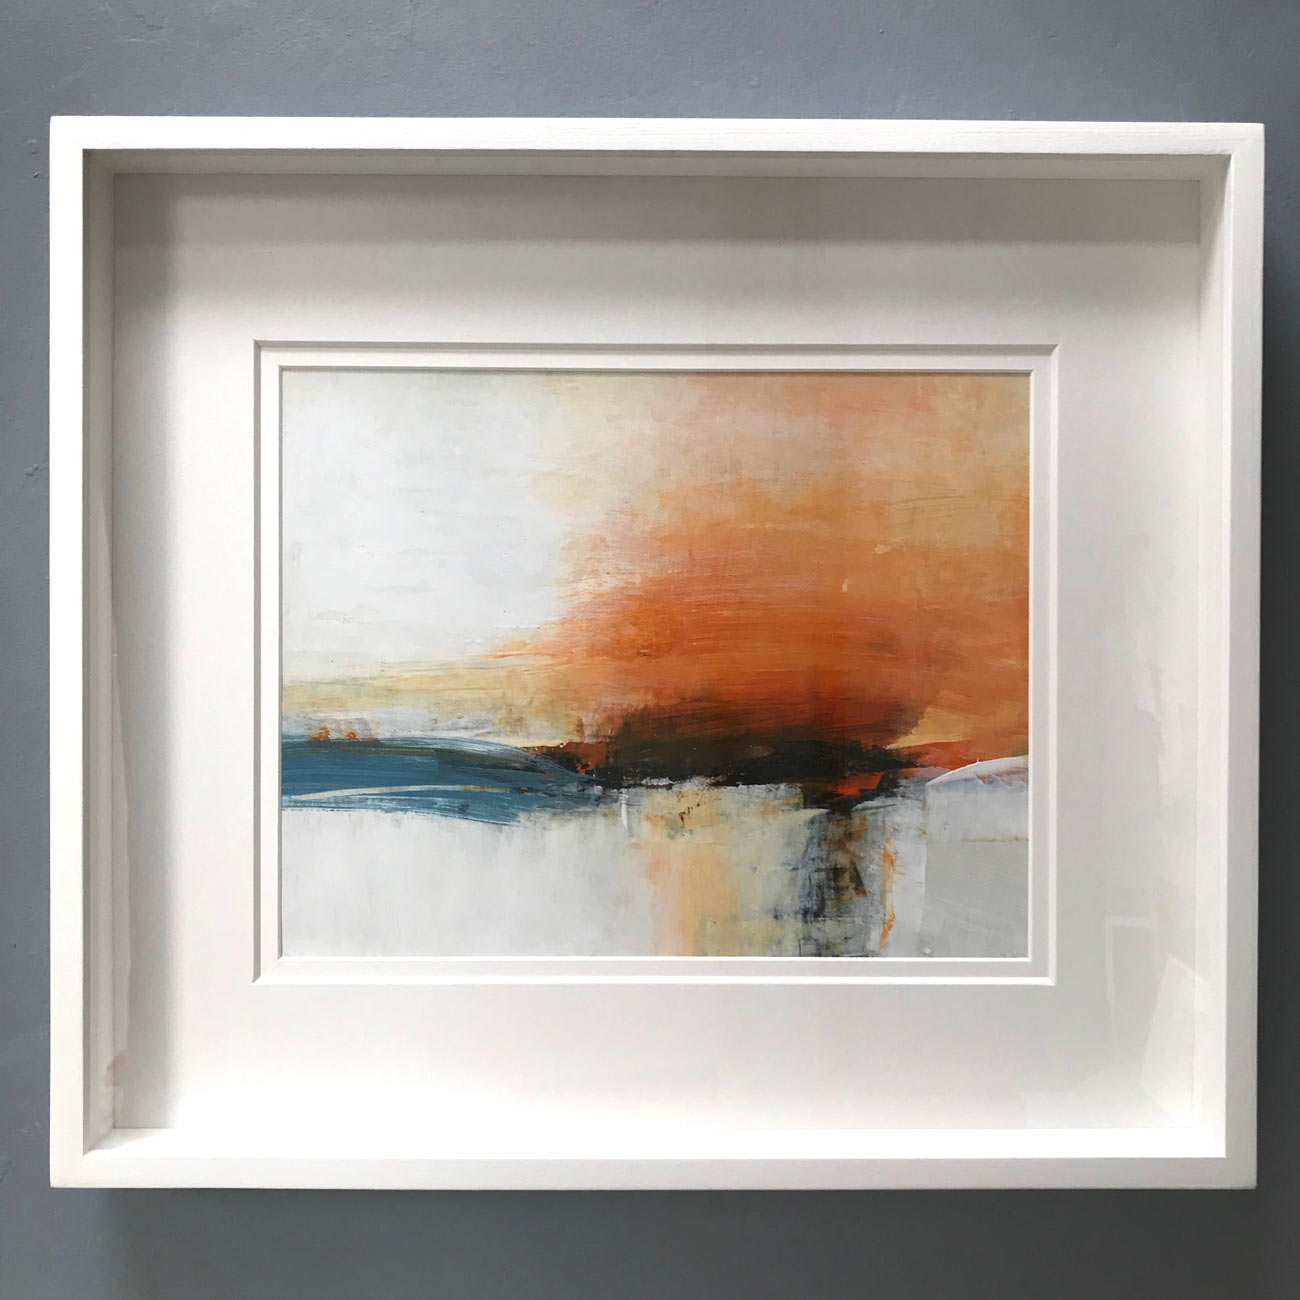 Earth Song - Evening framed by Neil Canning. Studio Collection Winter 2020